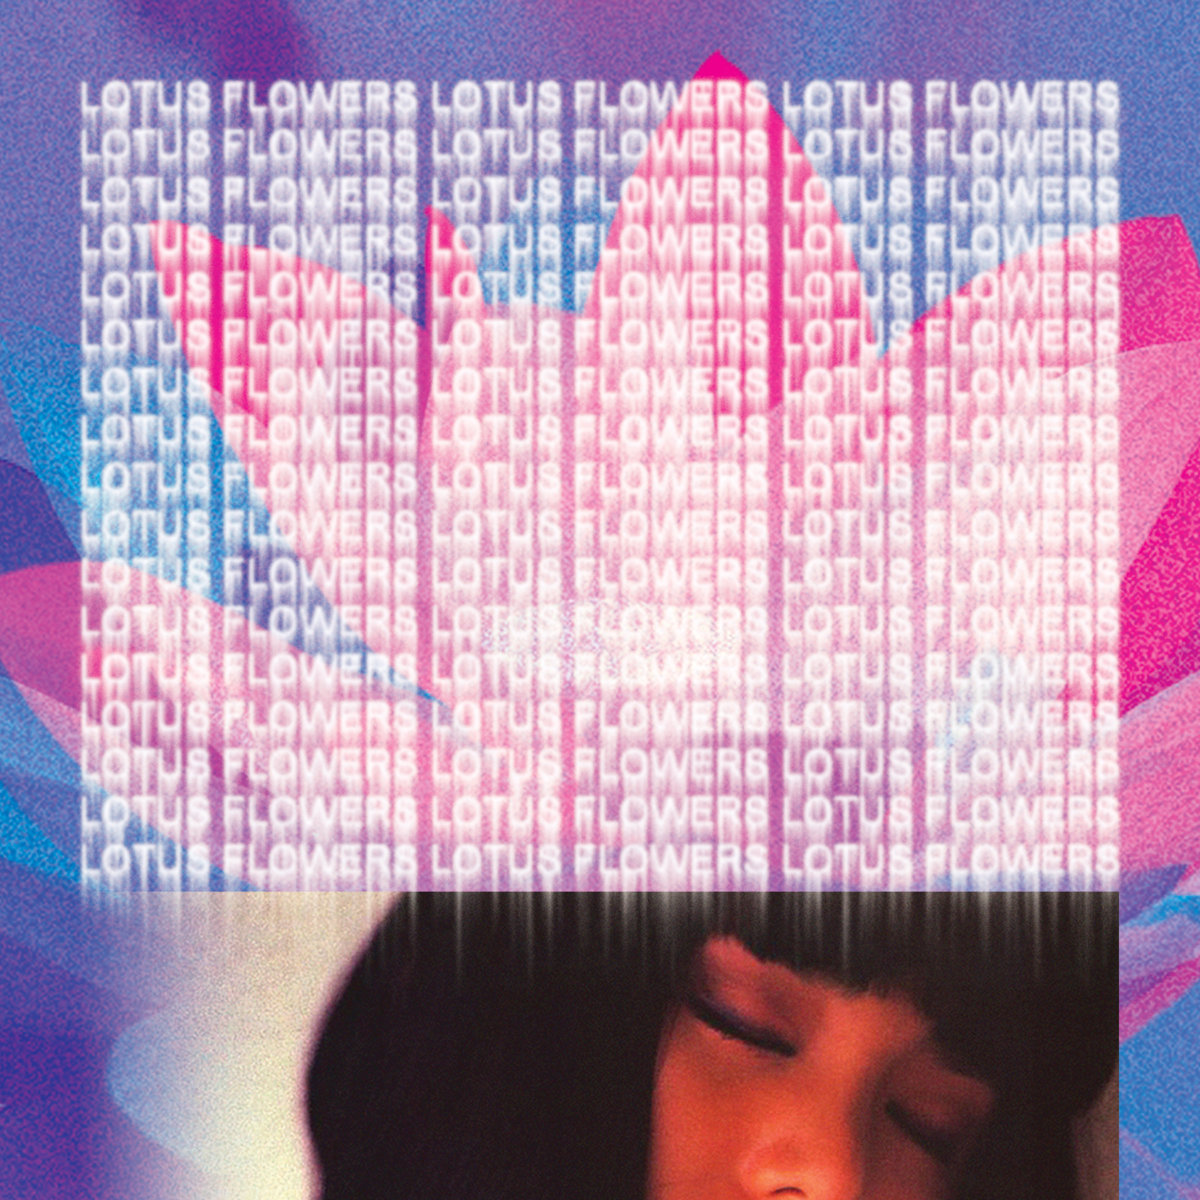 Origami Girl Lotus Flowers Music Review Tiny Mix Tapes